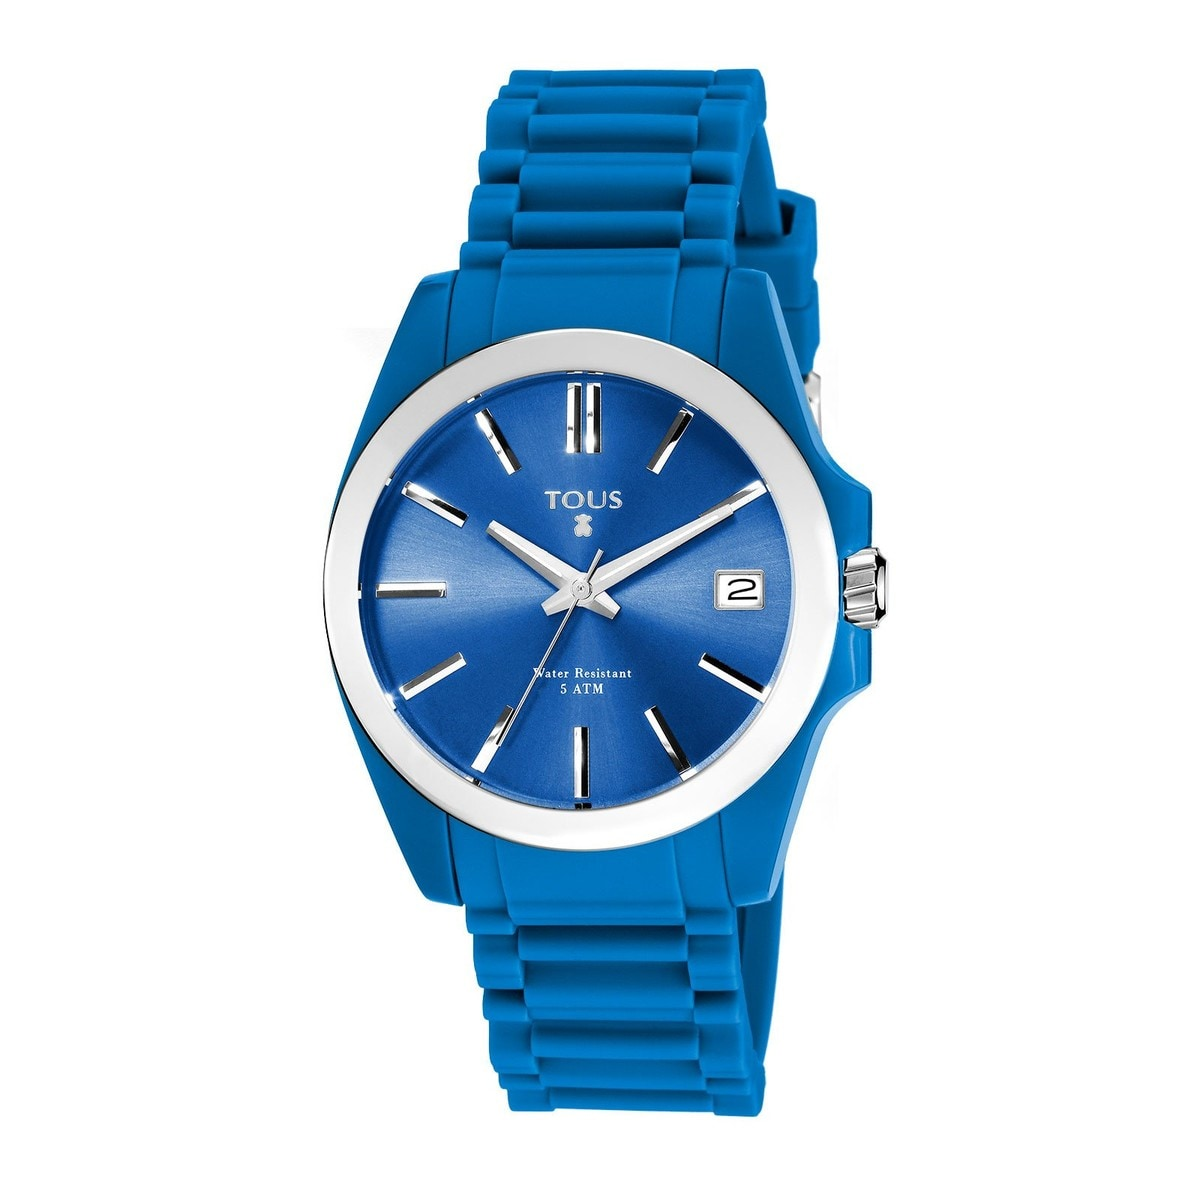 Steel Drive Fun Watch with blue Silicone strap